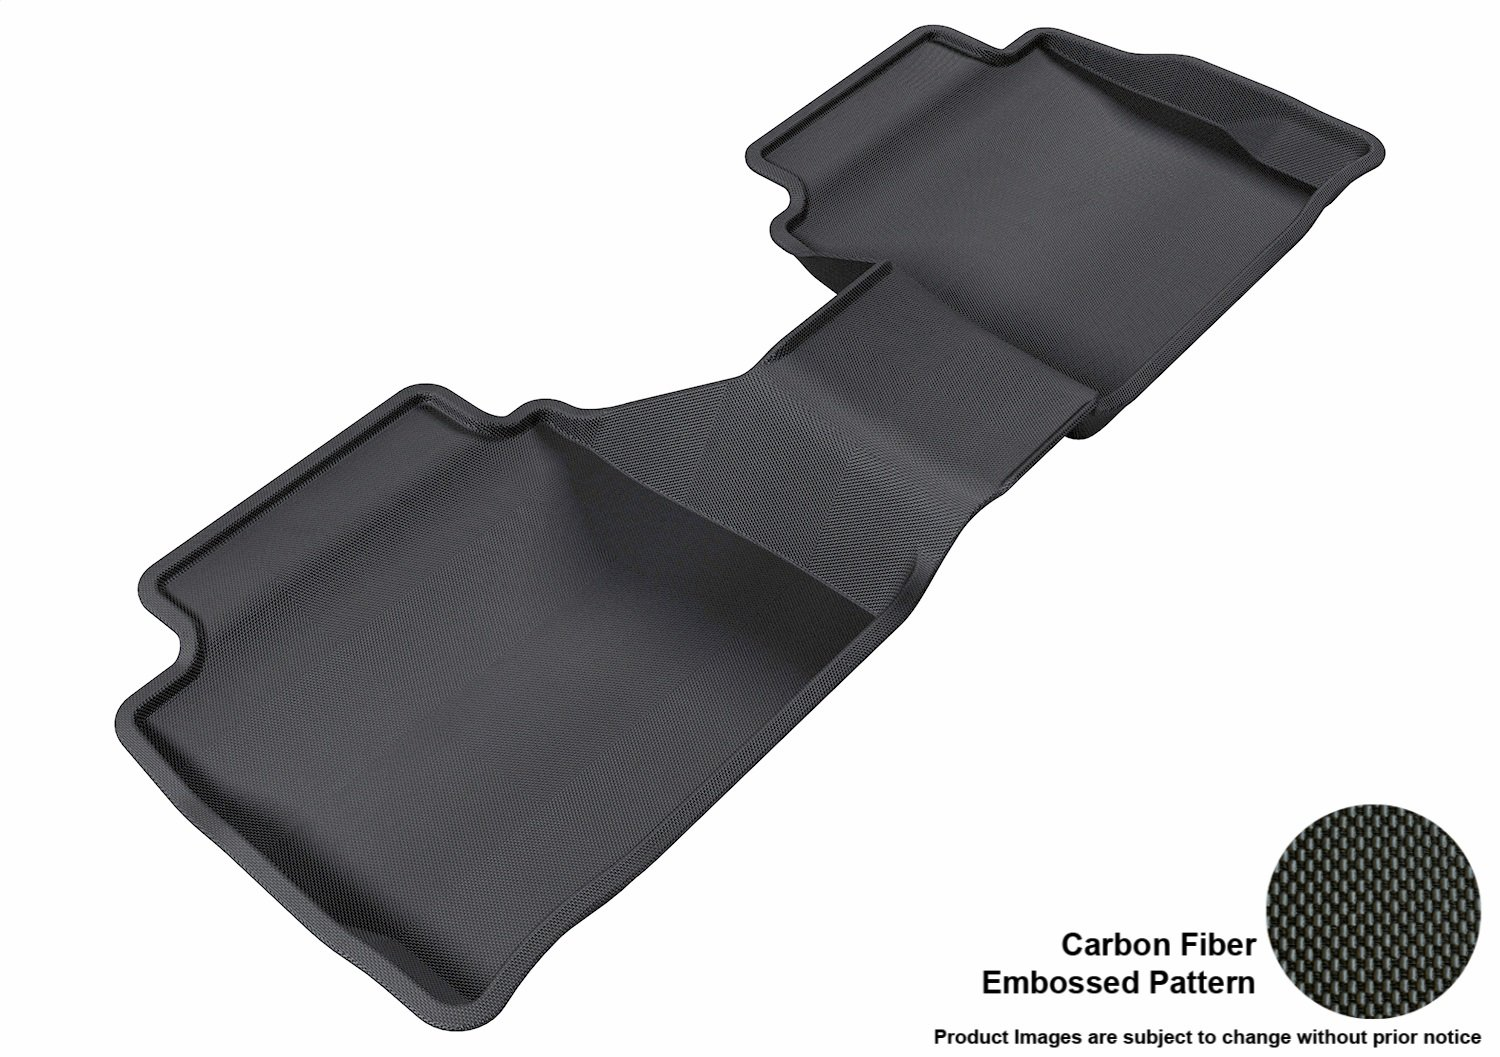 Black 3D MAXpider Complete Set Custom Fit All-Weather Floor Mat for Select Ford Fusion Models L1FR06001509 Kagu Rubber